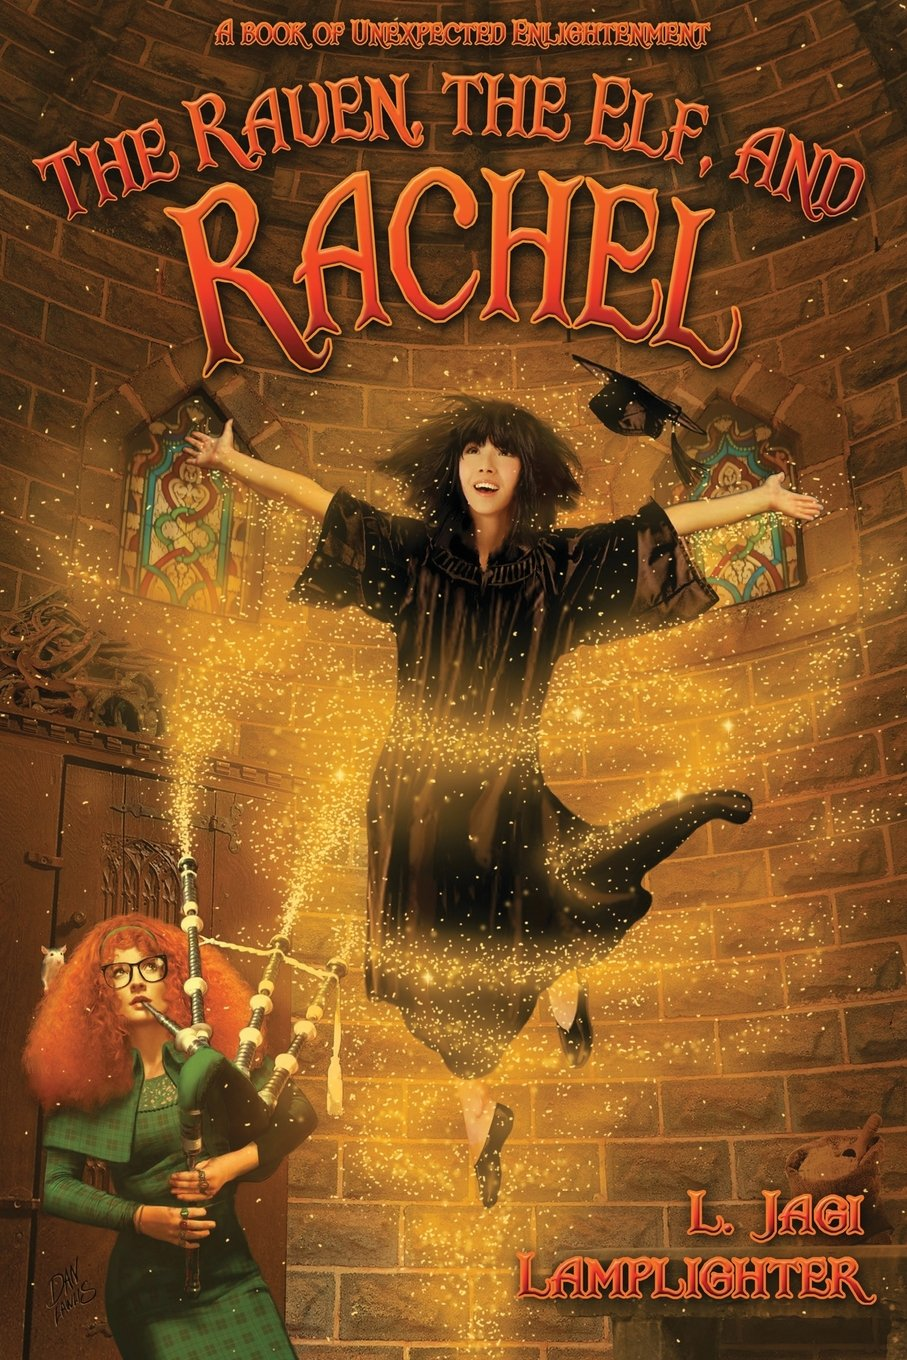 Download The Raven, The Elf, and Rachel (The Books of Unexpected Enlightenment) (Volume 2) PDF